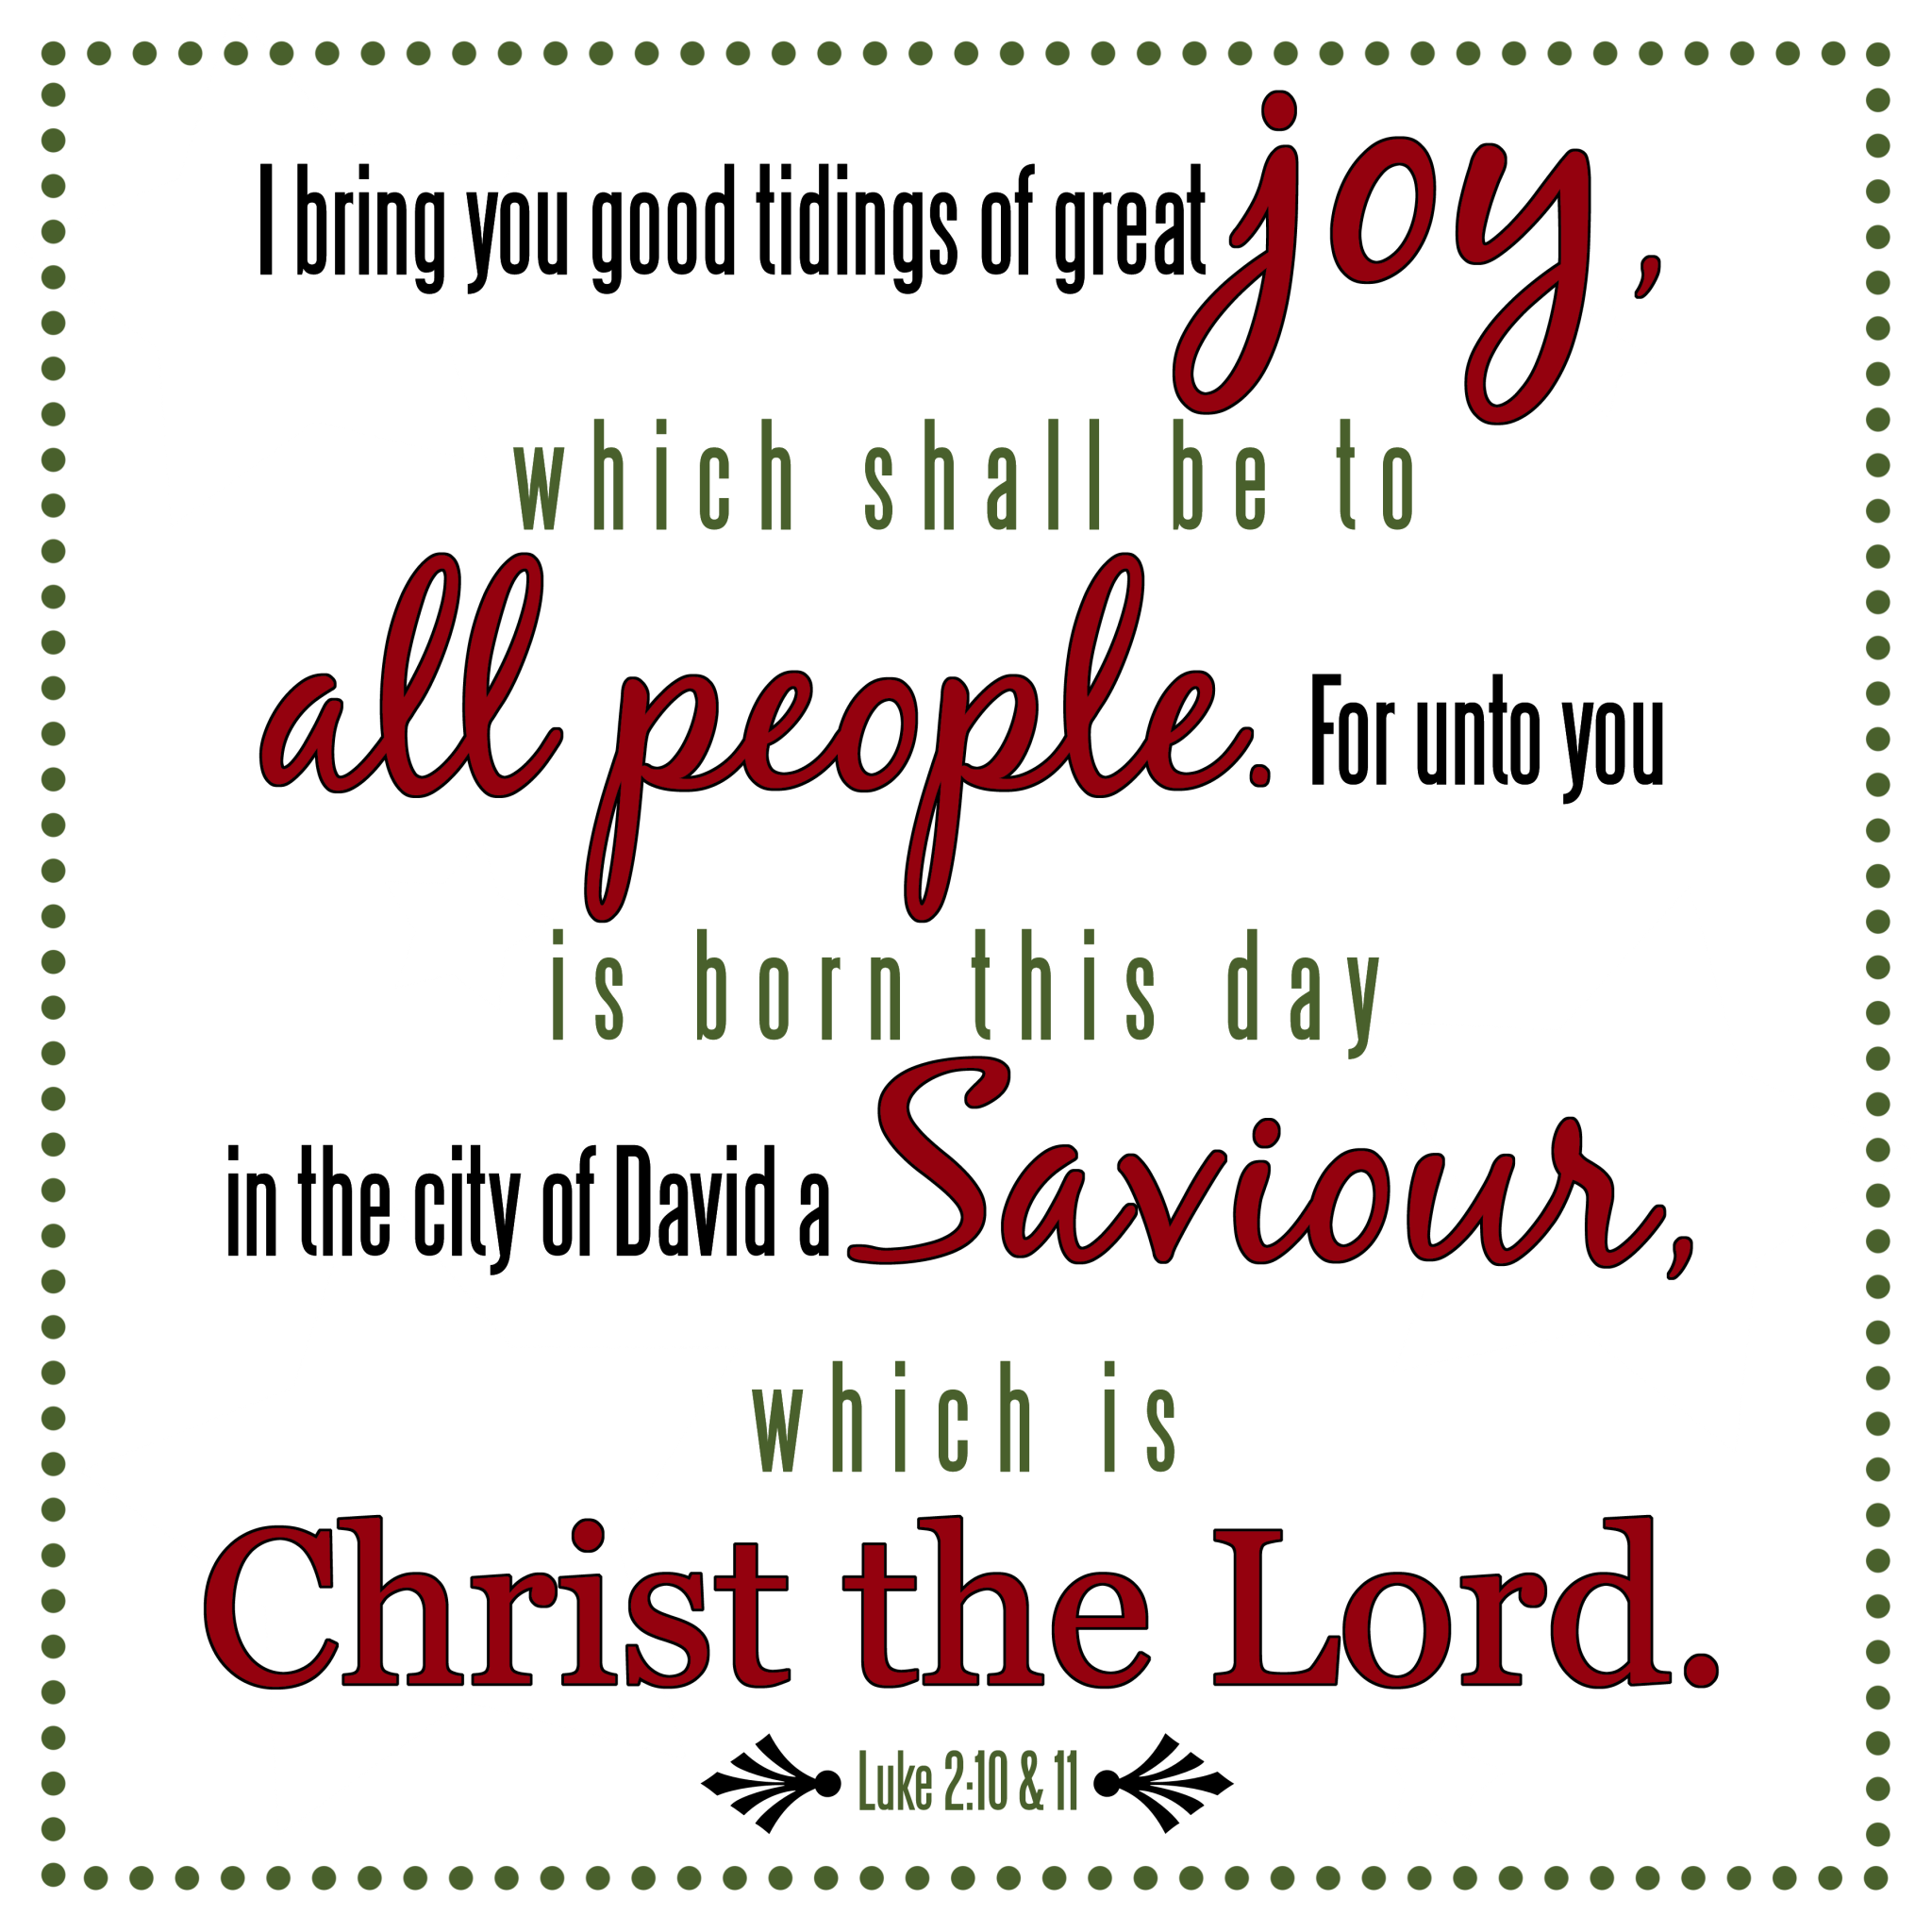 Free Worship Scripture Cliparts, Download Free Clip Art, Free Clip Art on  Clipart Library